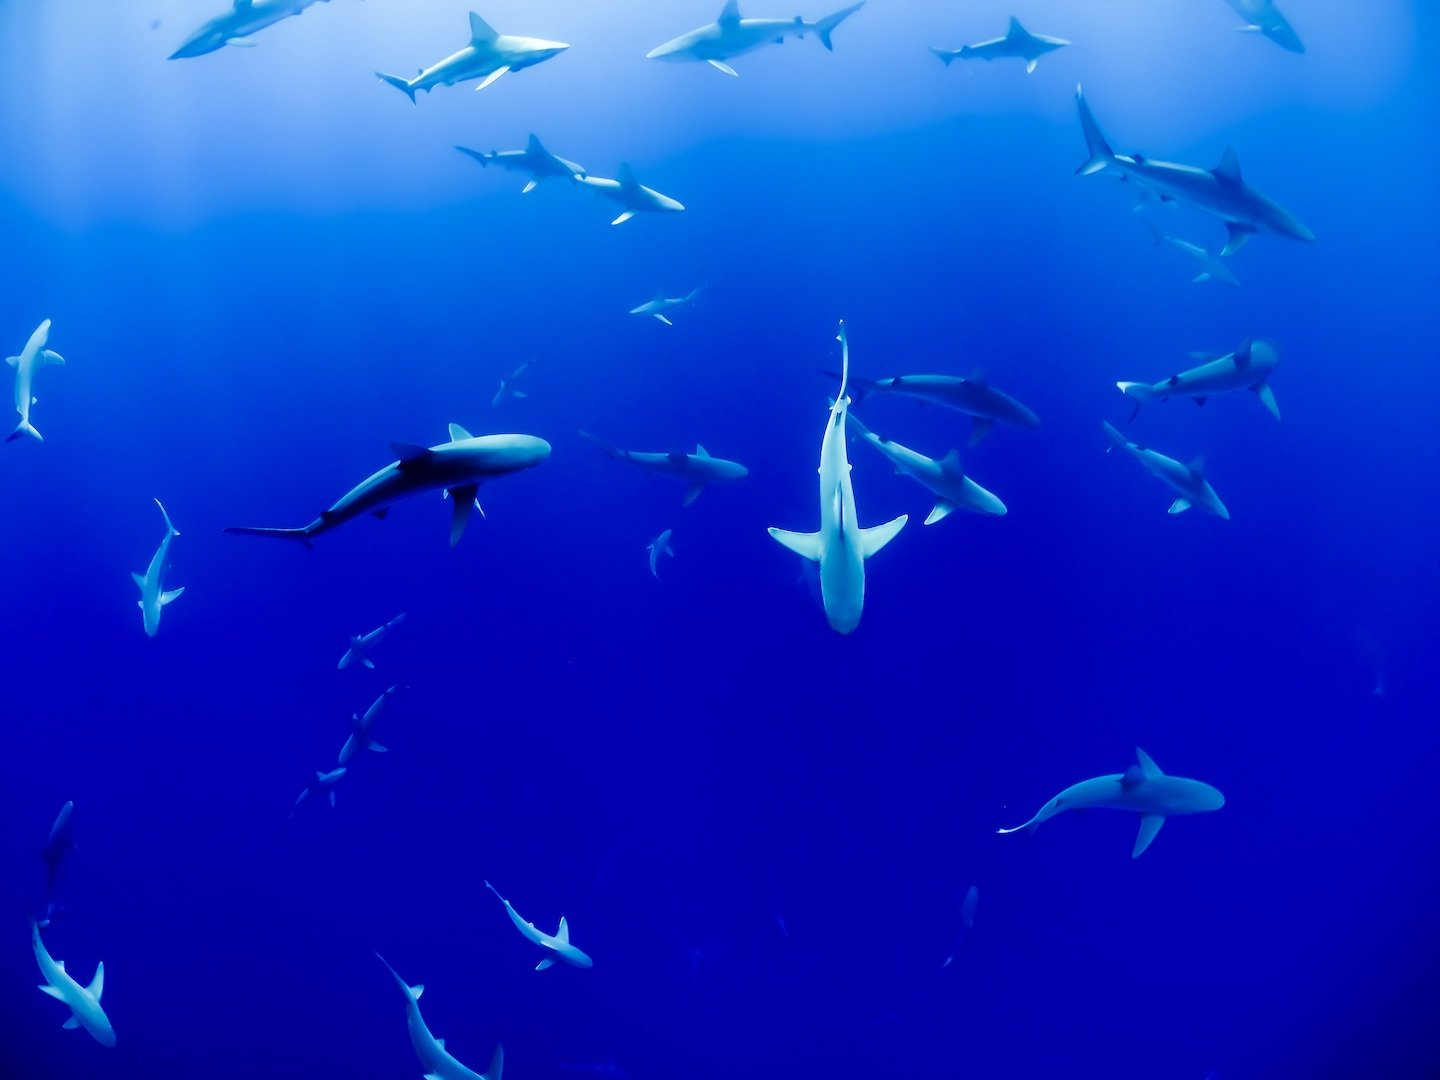 Image of sharks circling in the ocean